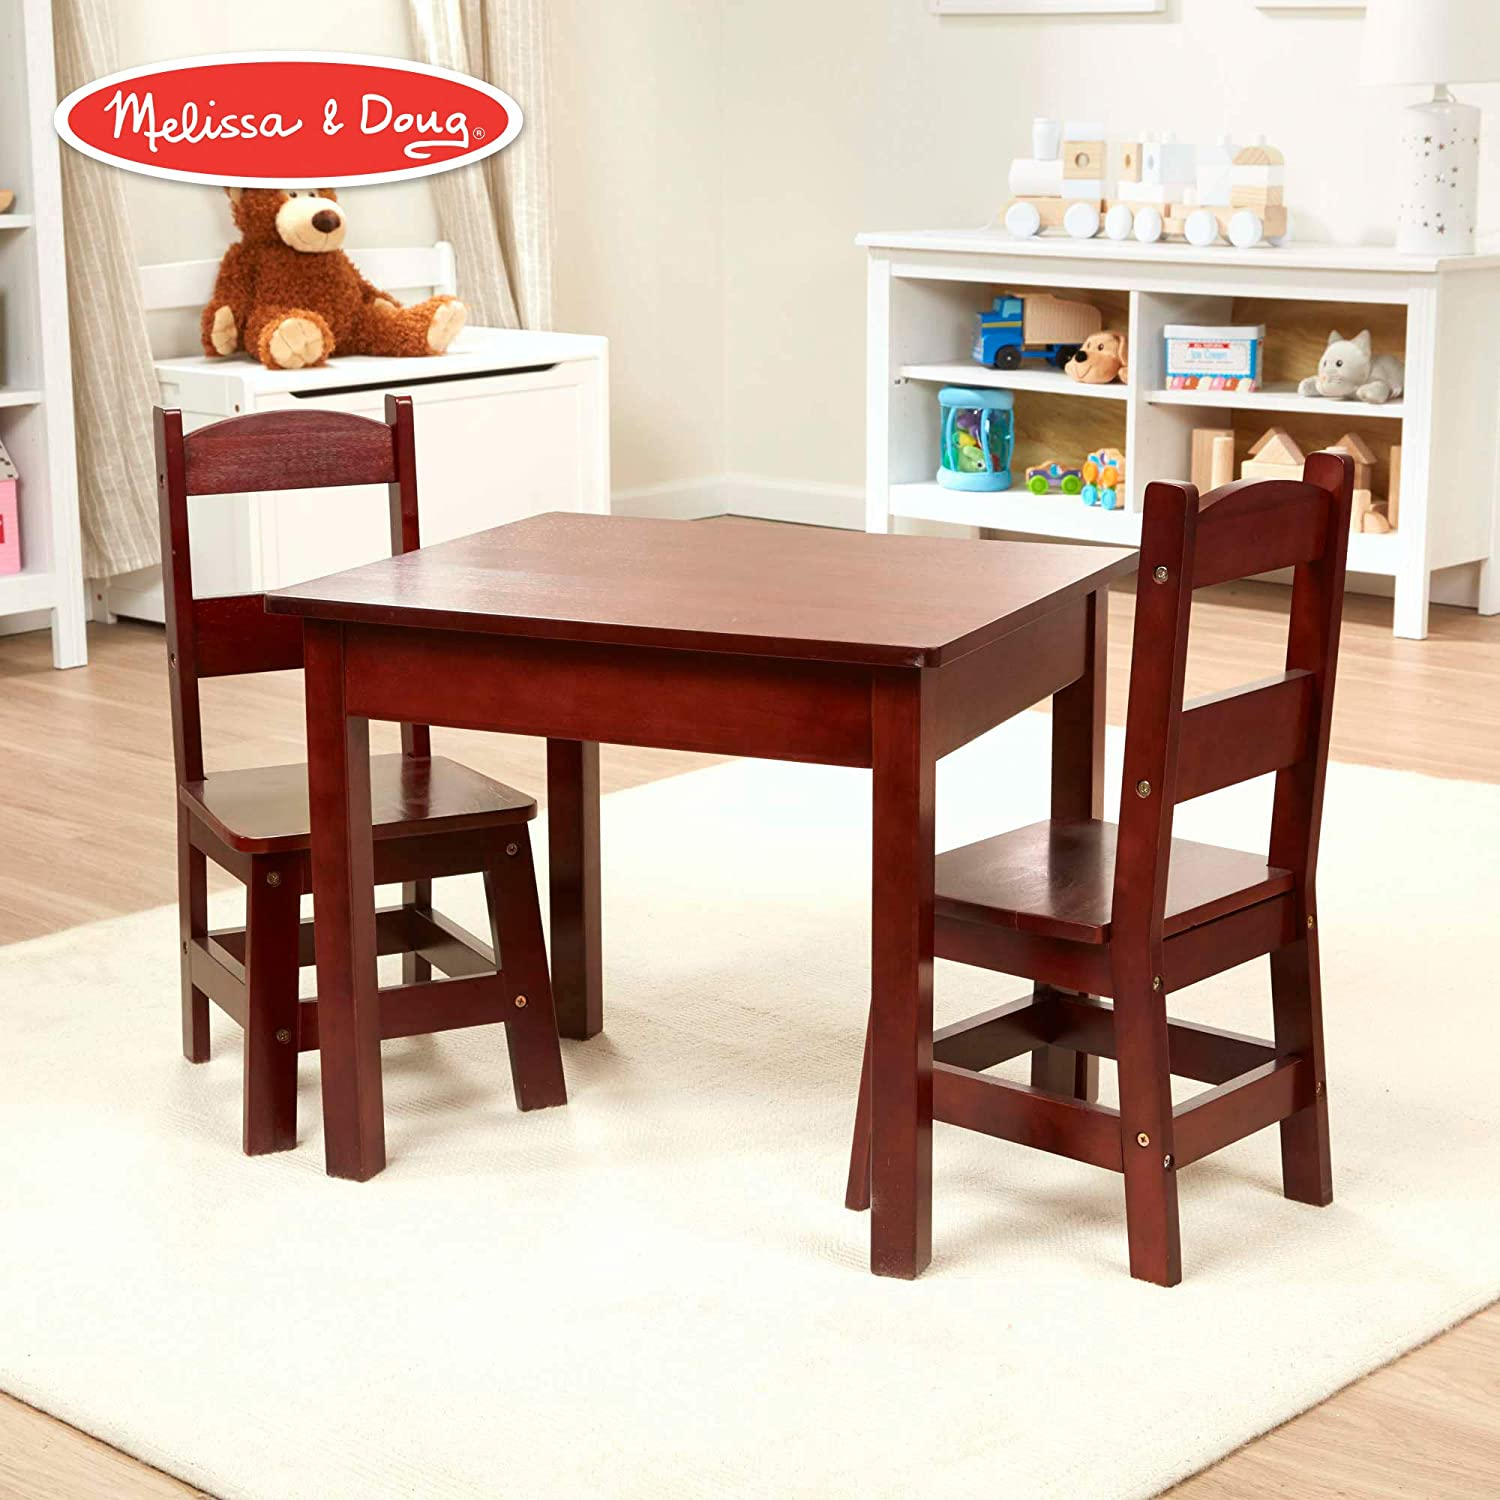 Melissa & Doug Wooden Table and Chairs Set - Espresso